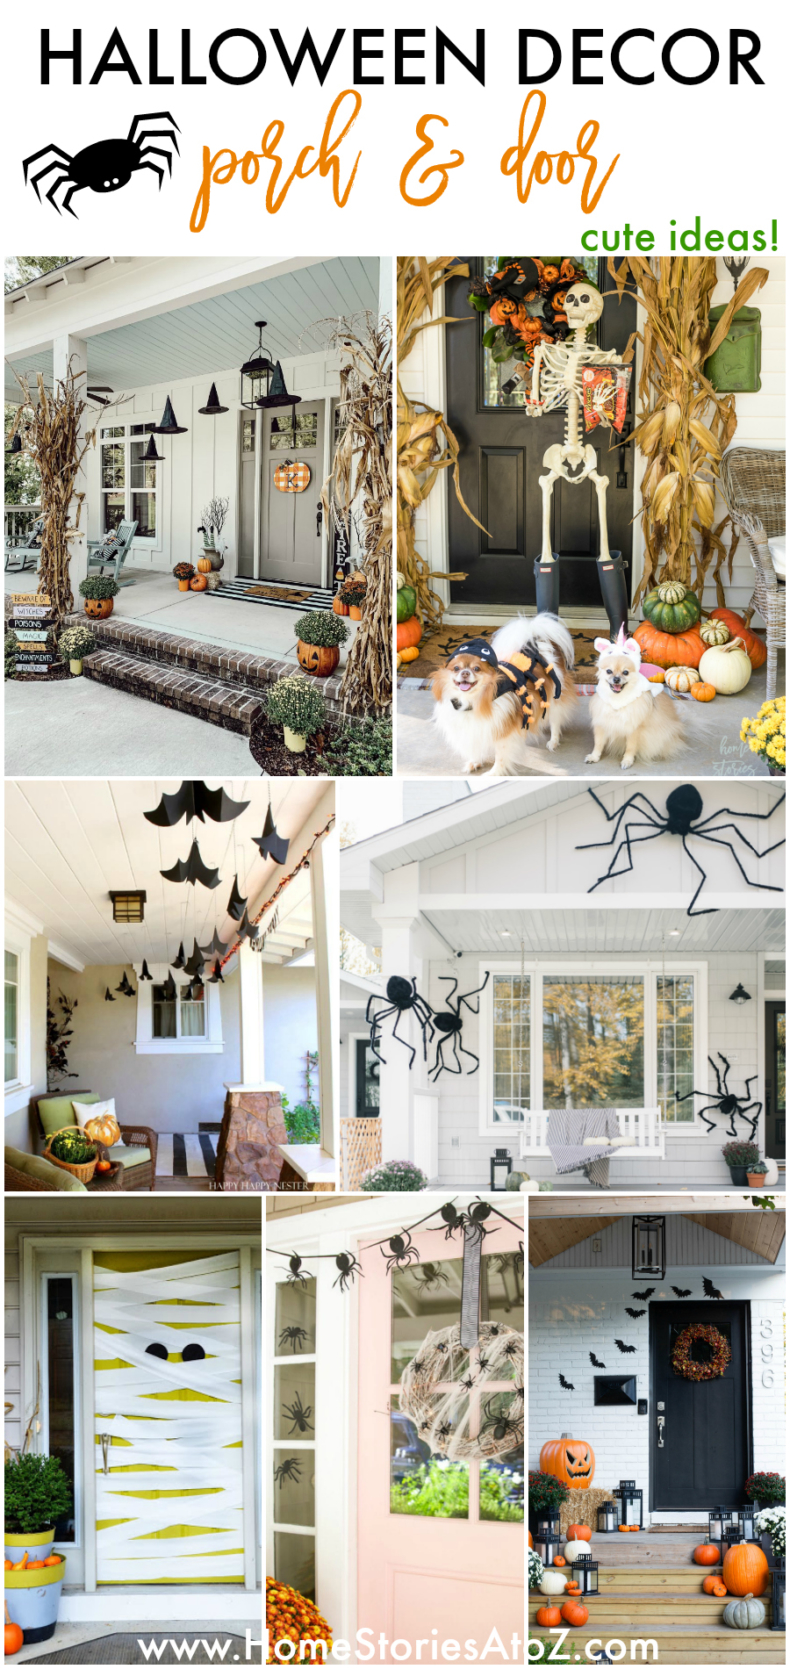 Halloween Porch & Door Decor Ideas